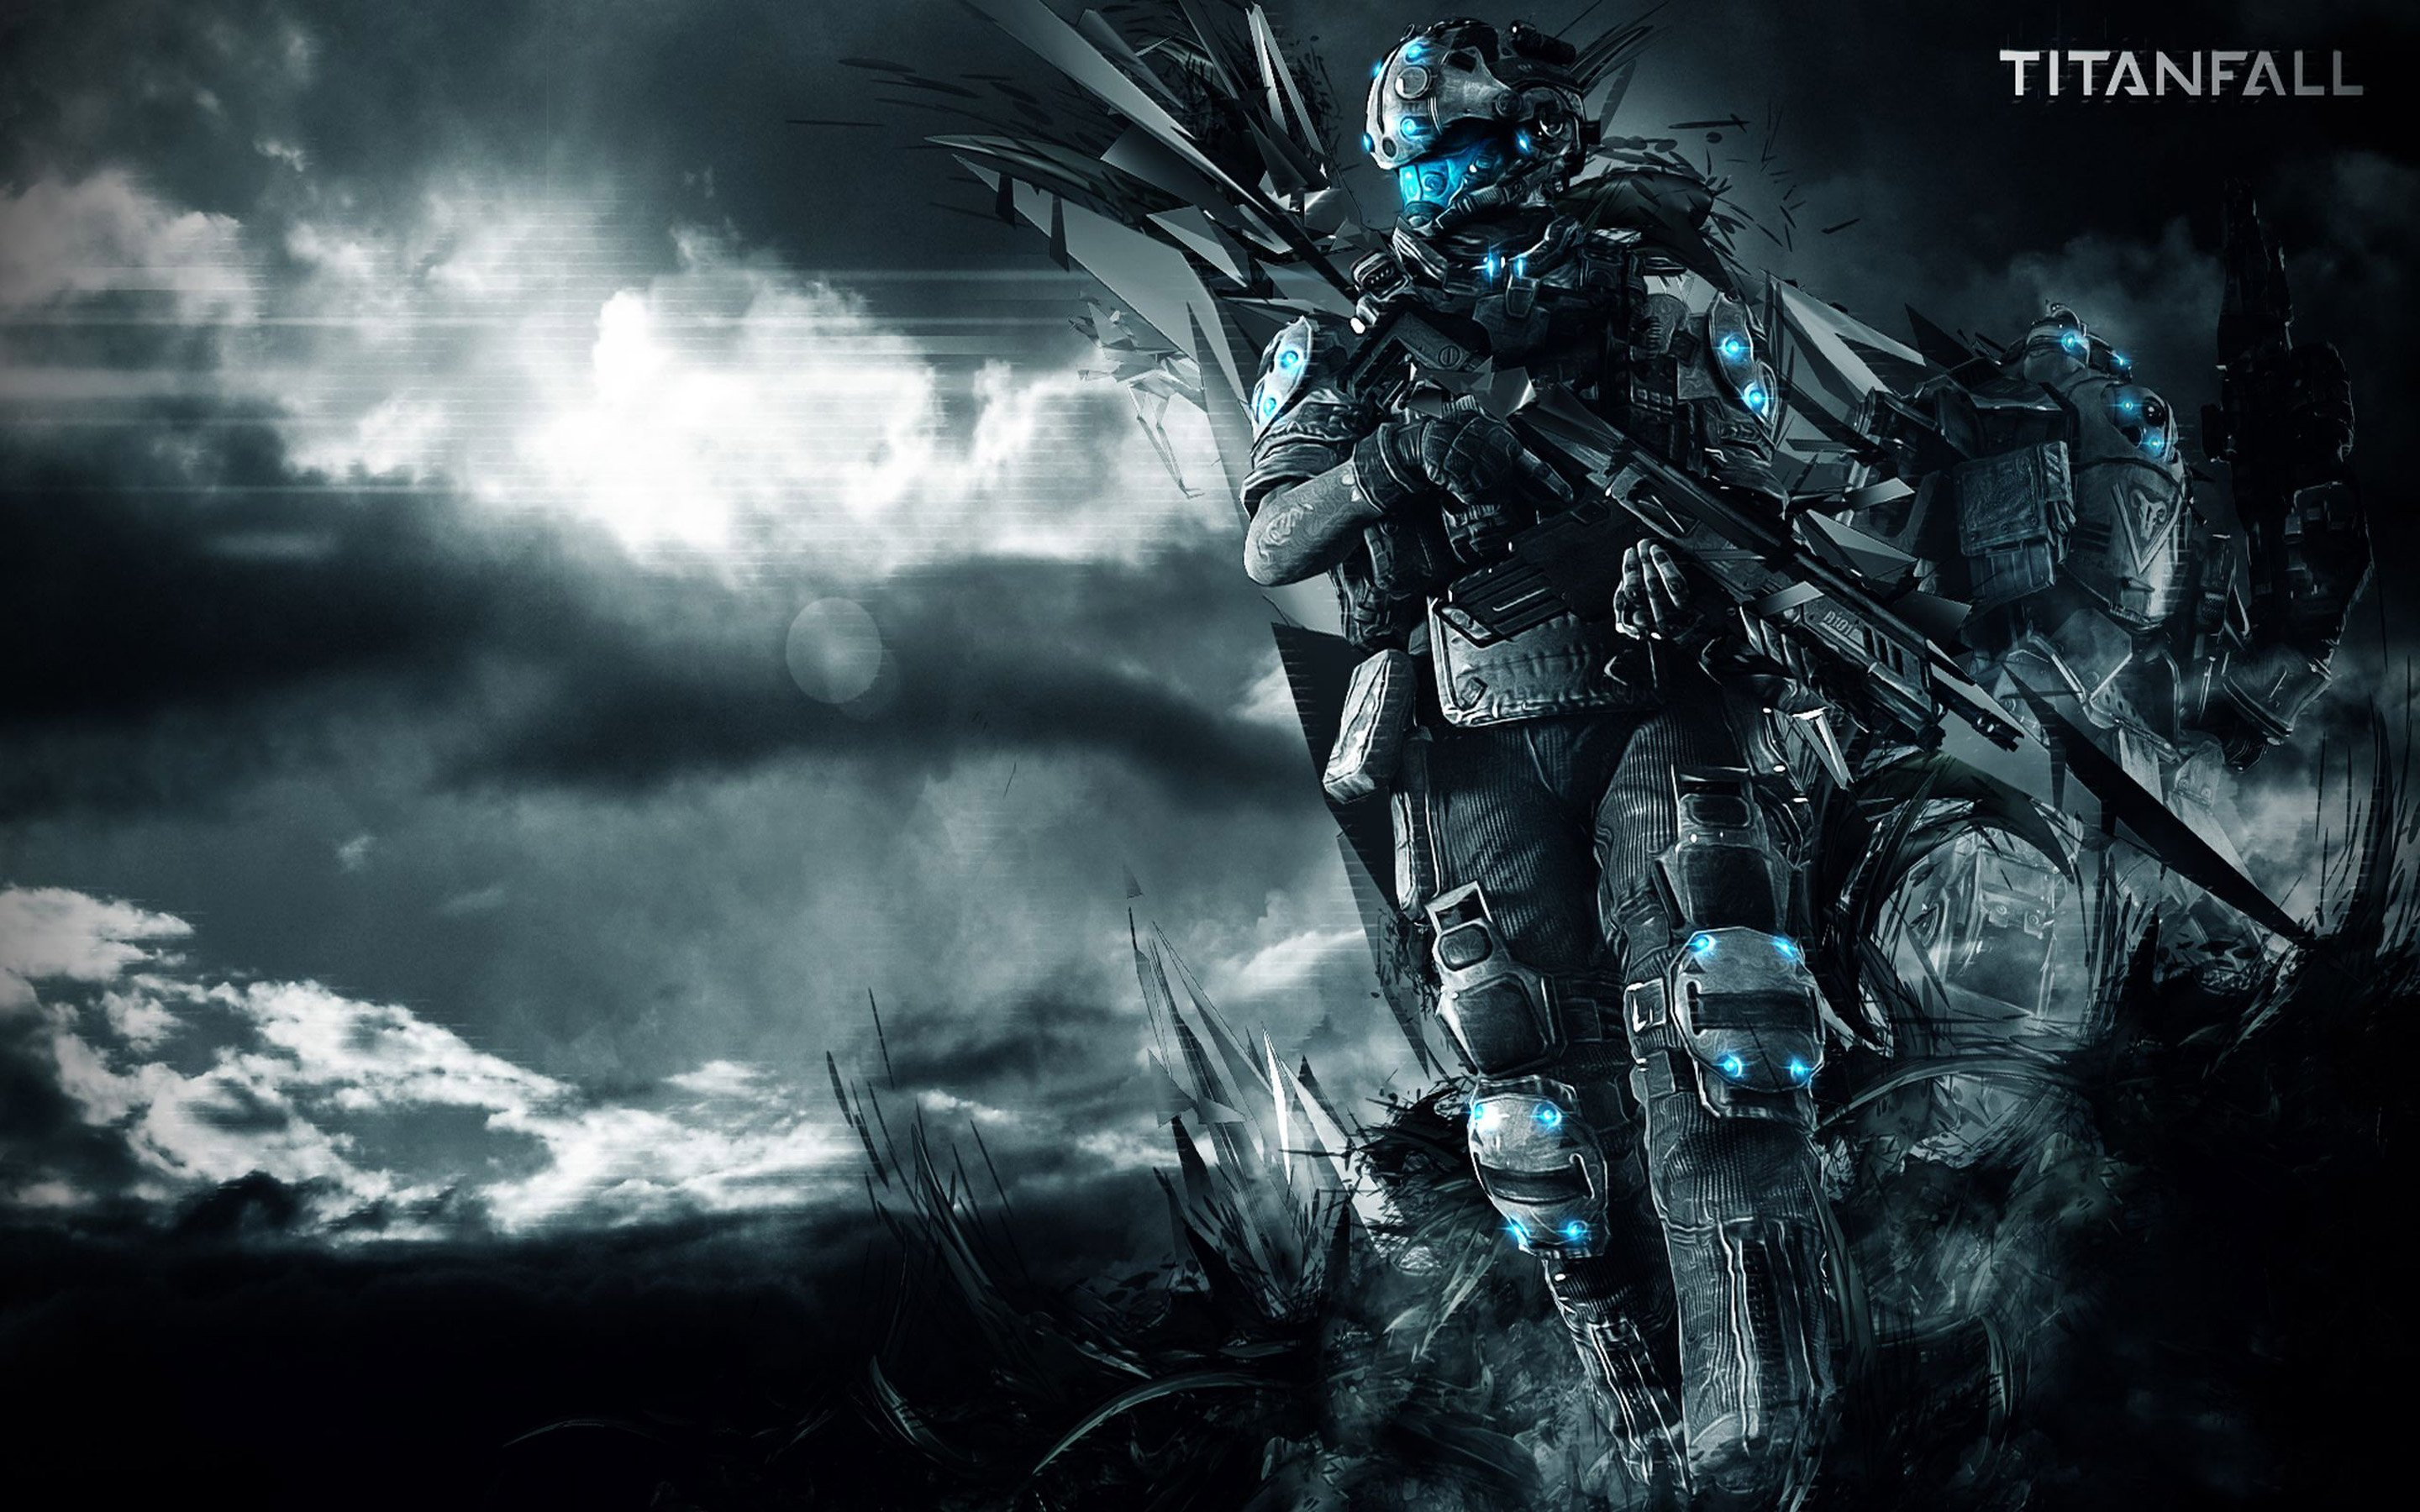 TITANFALL Shooter Fps Action Futuristic Online Mmo